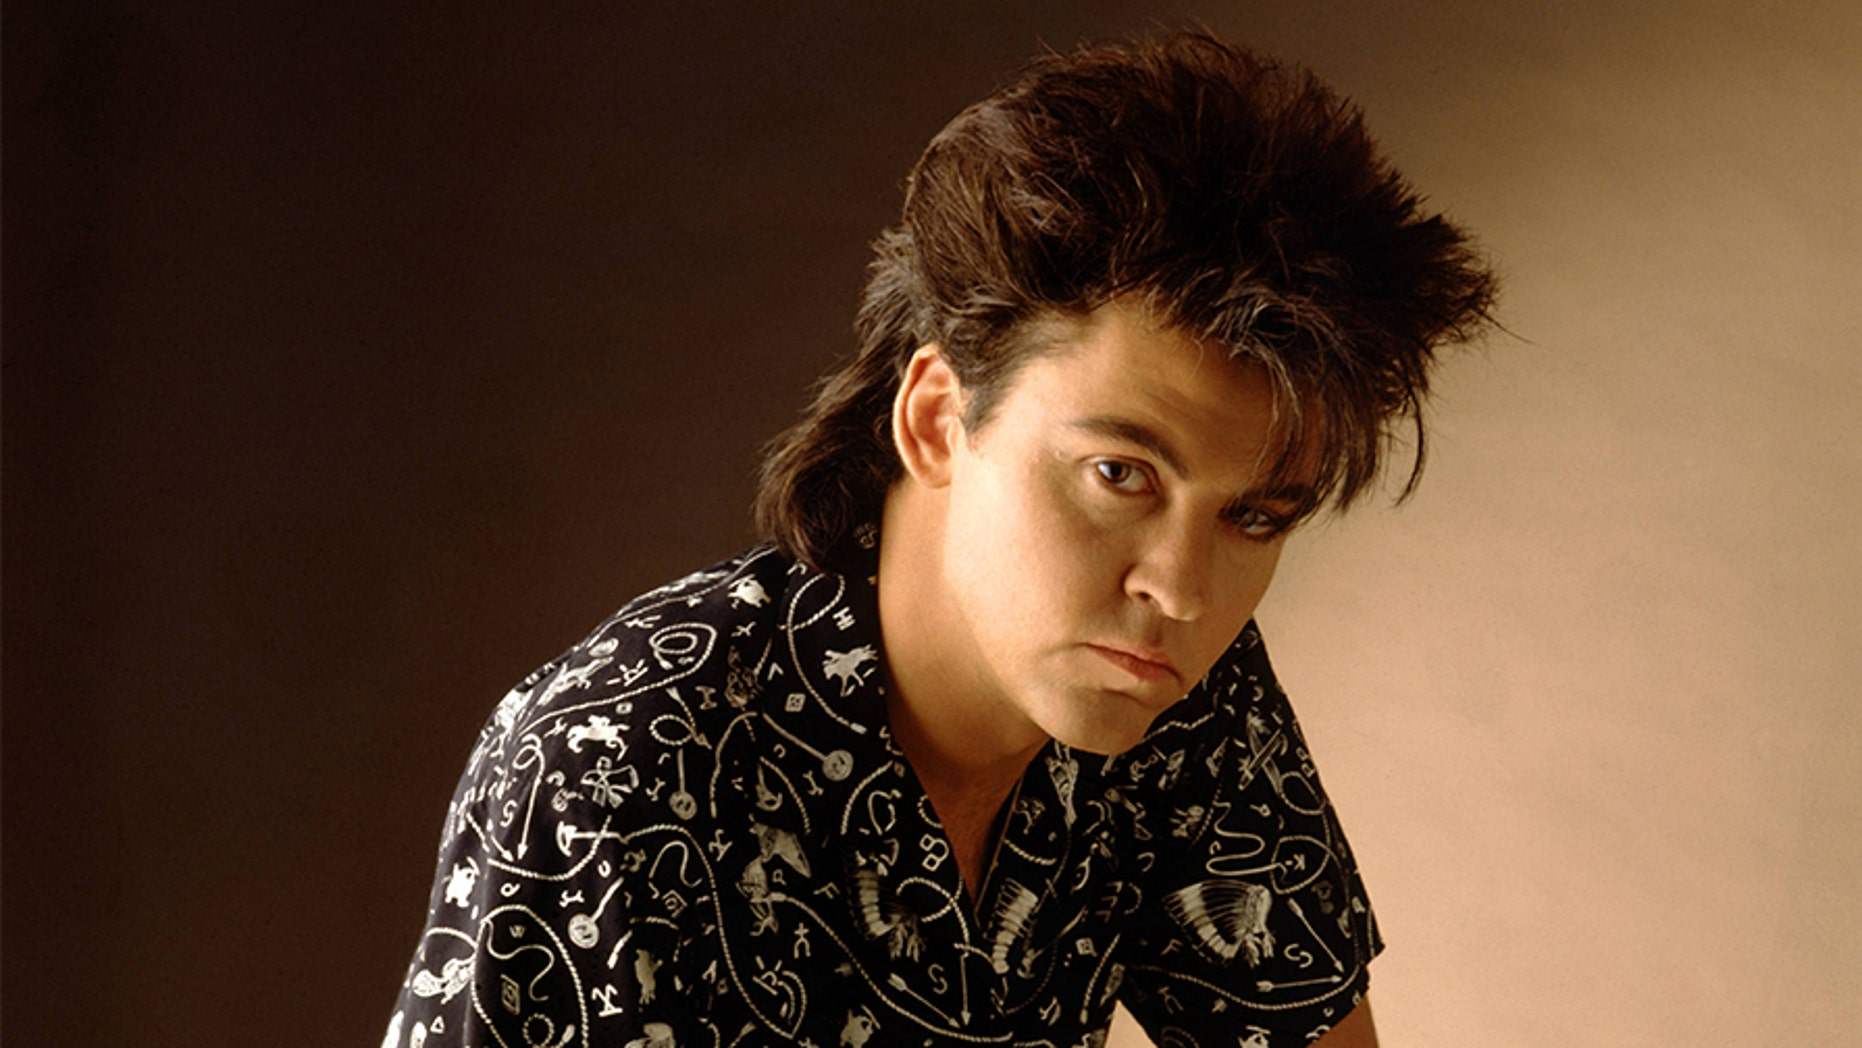 Former pop star Paul Young, here in a file photo from the '80s, opened up about the death of his beloved wife Stacey Smith.